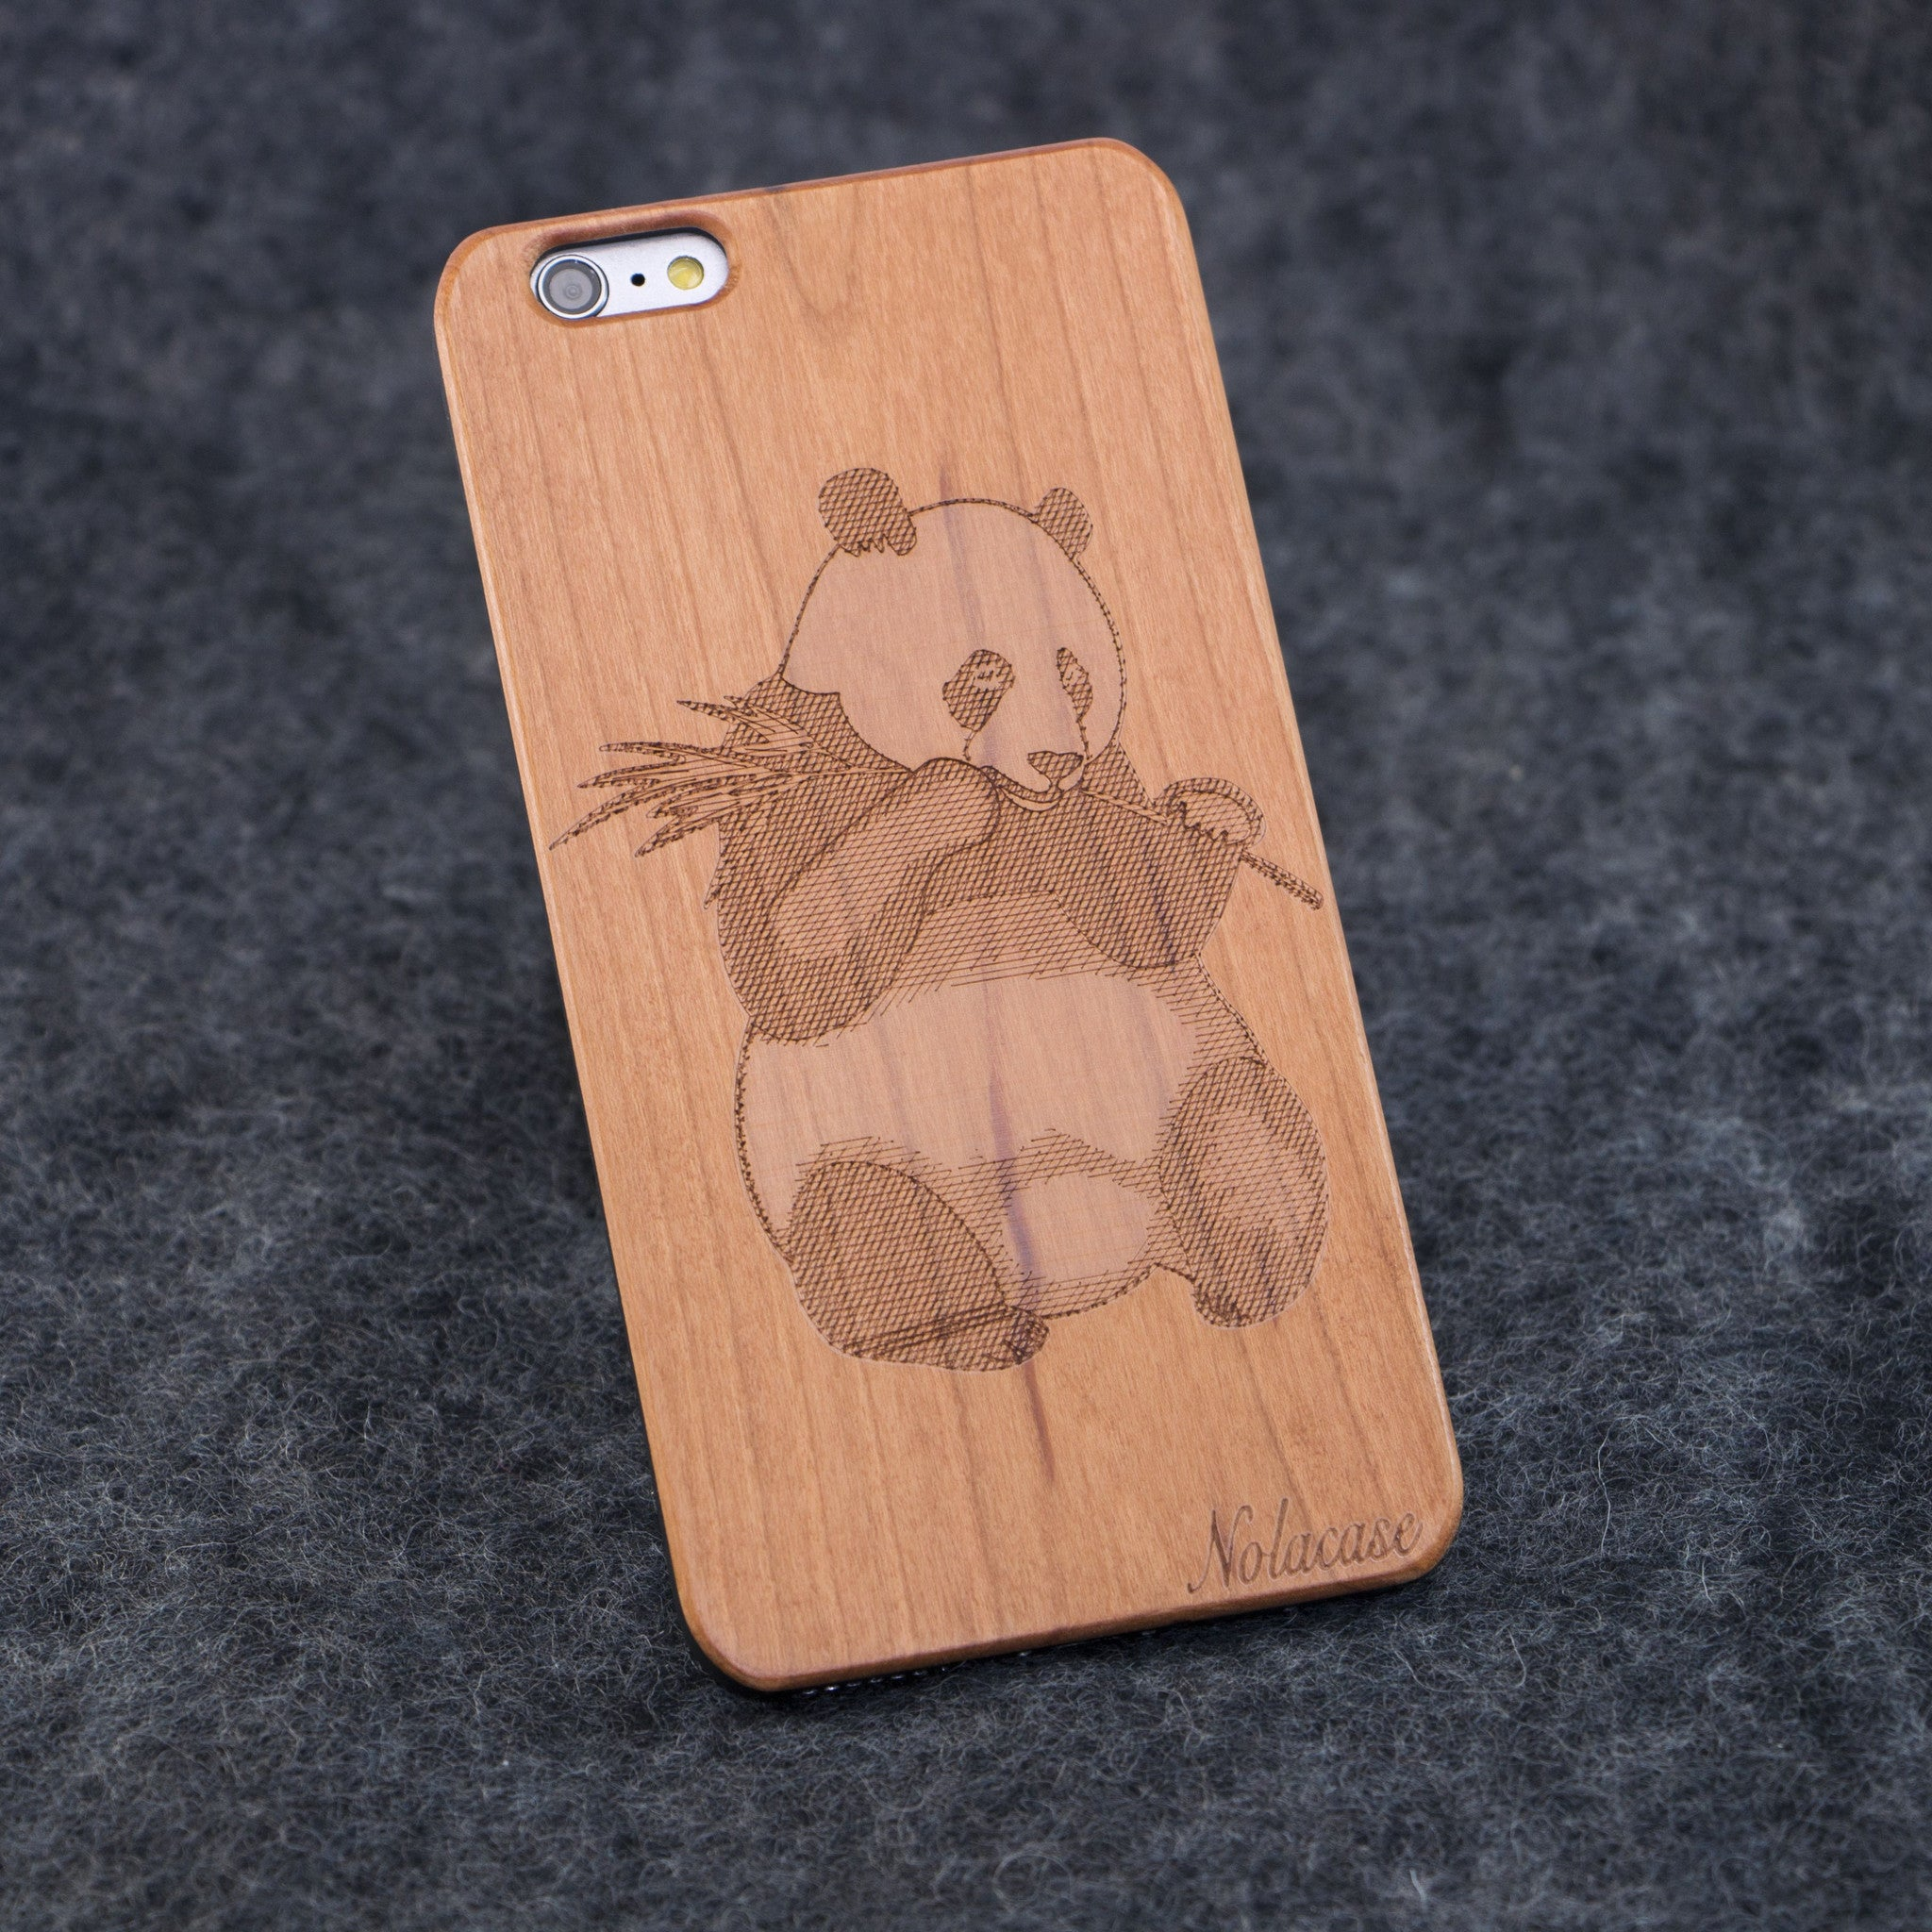 iPhone 6+ Panda Slim Wood Case - NOLACASE - 1